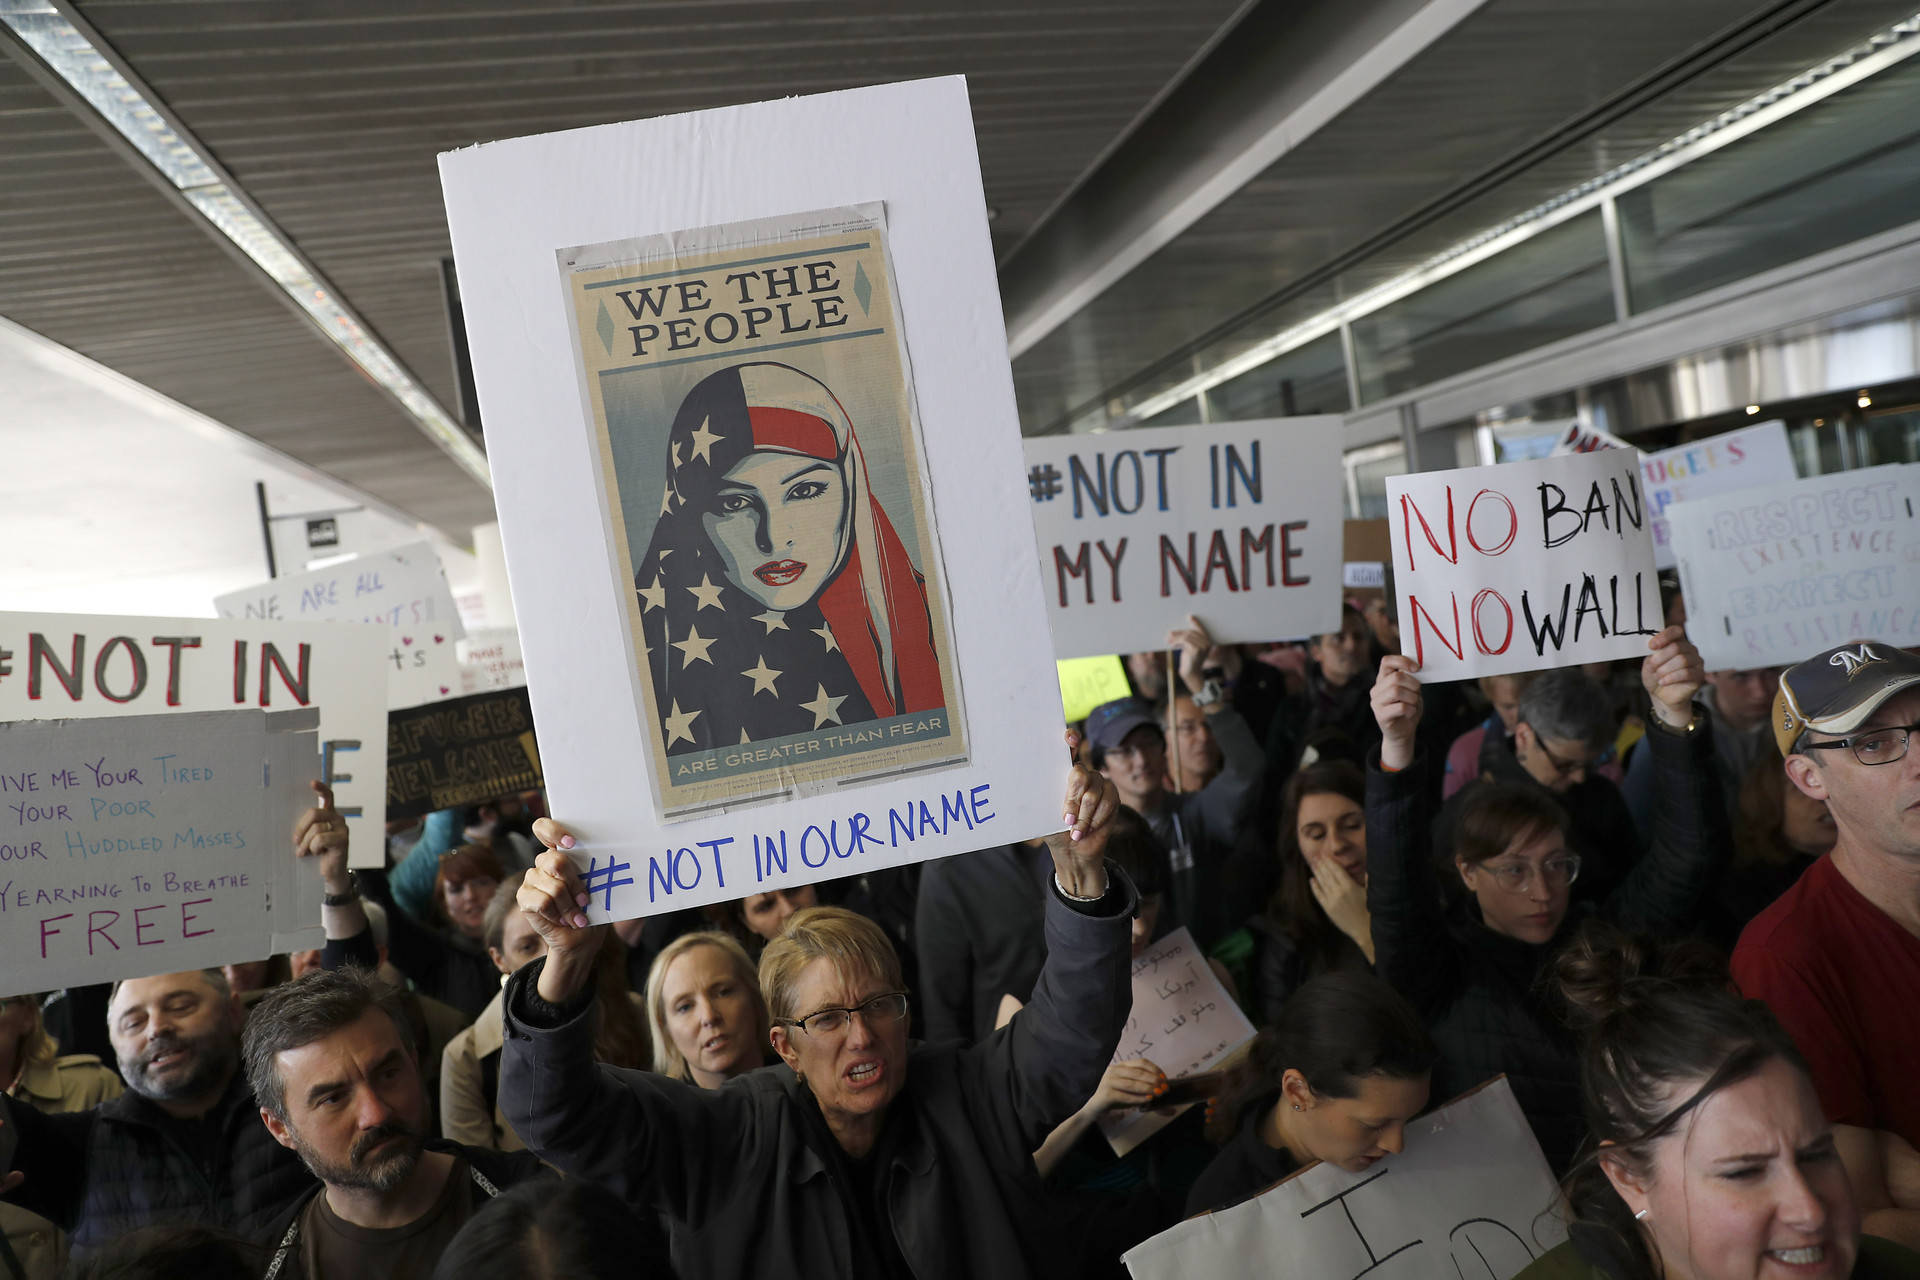 Protestors at San Francisco Airport demonstrate against the Executive Order banning immigrants from seven countries. Source:  KQED